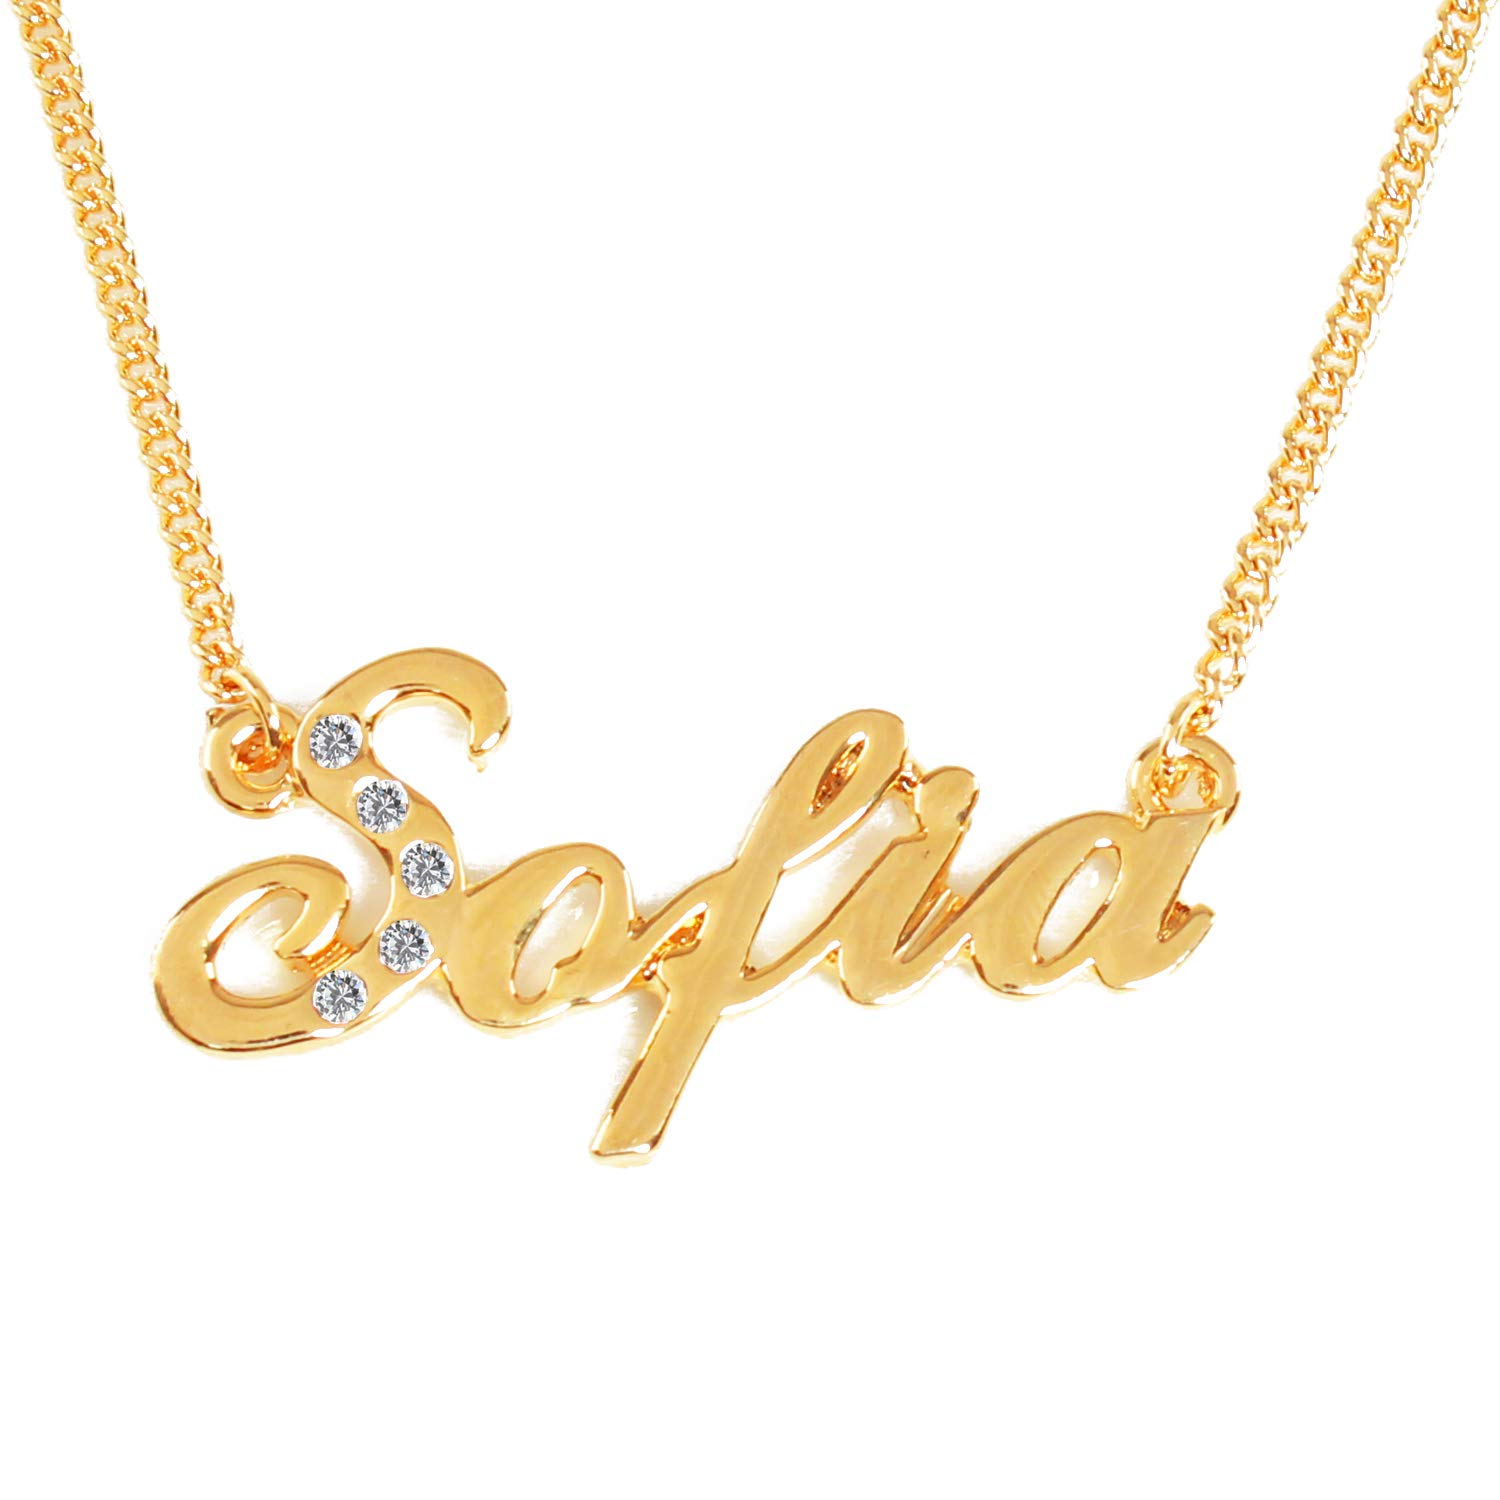 a9d5e4f65e033 Zacria Name Necklace Sofia 18K Gold Plated